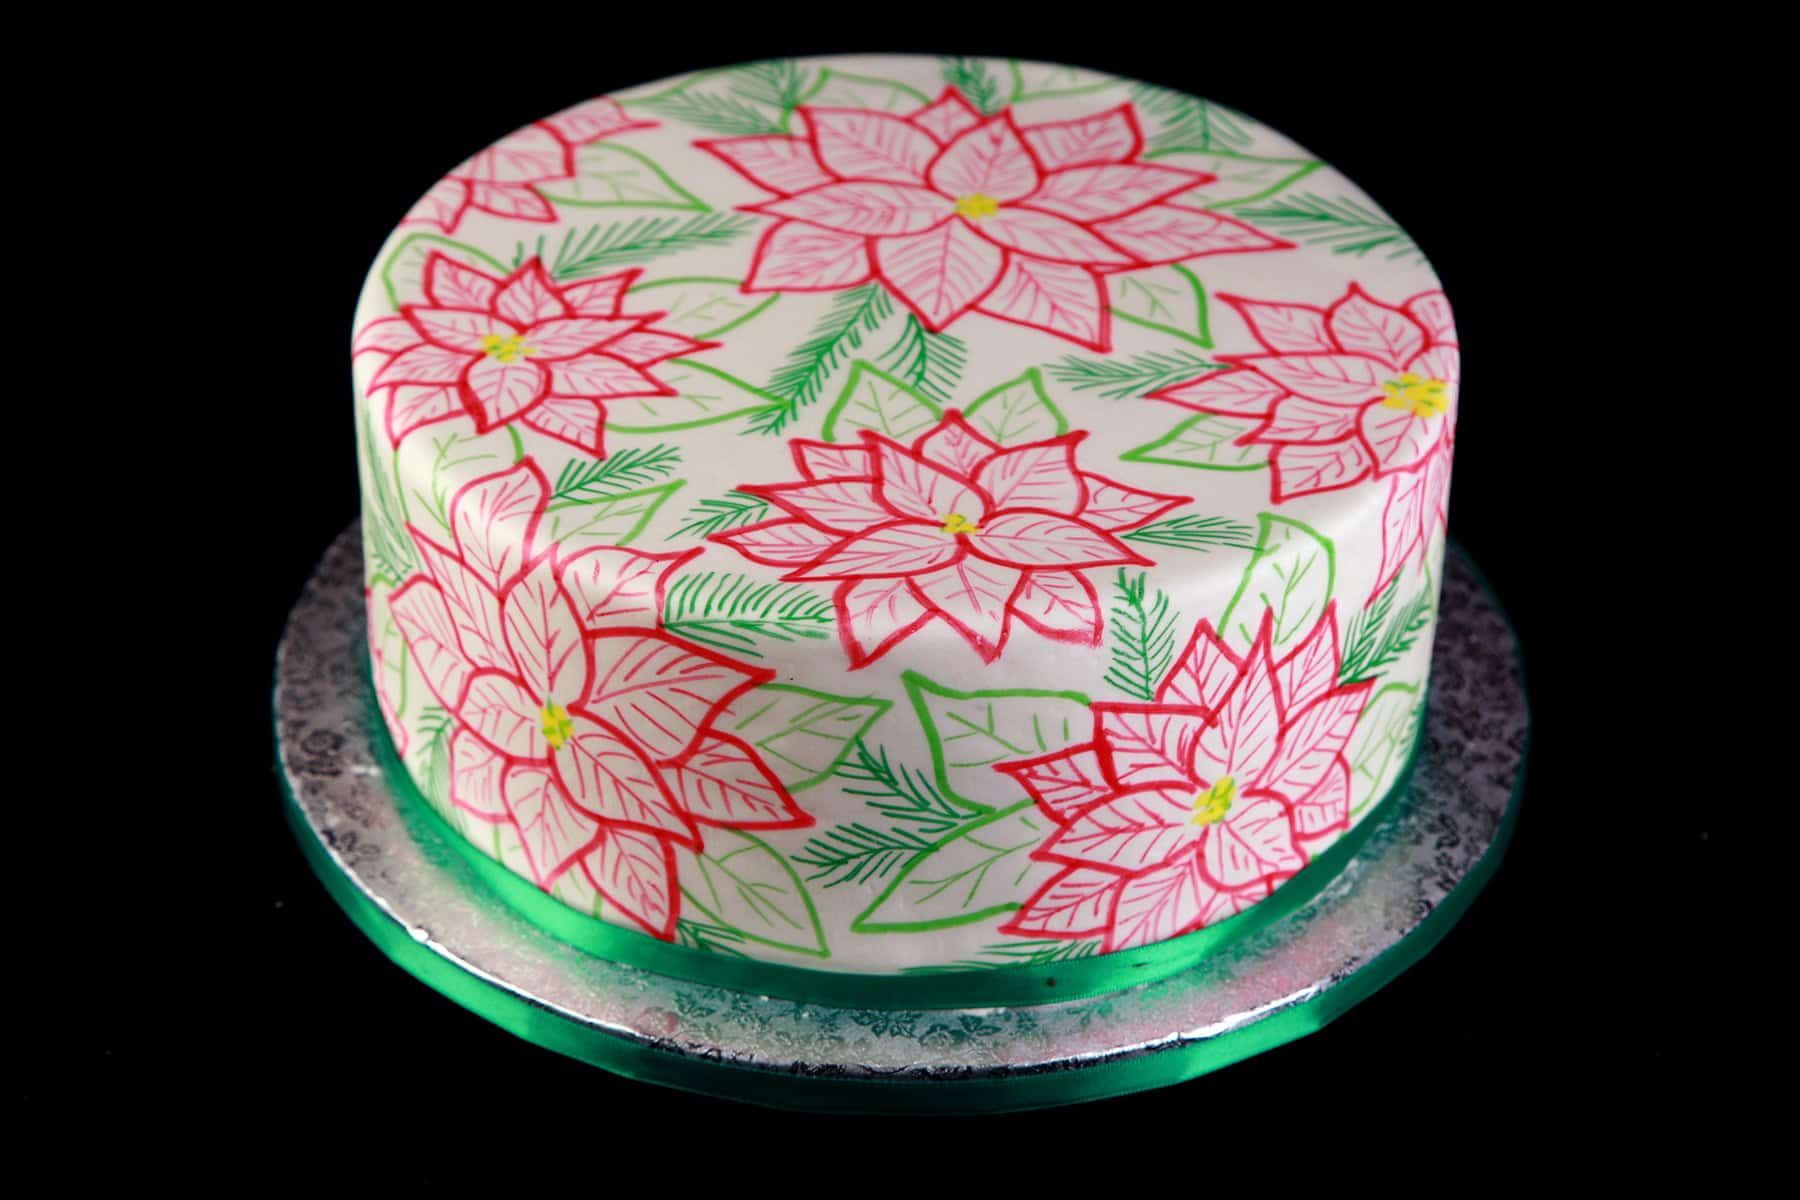 A large, round cake covered in smooth white fondant is covered in hand sketched poinsettias. The design is in red, 2 shades of green, and has yellow accents. The base of the